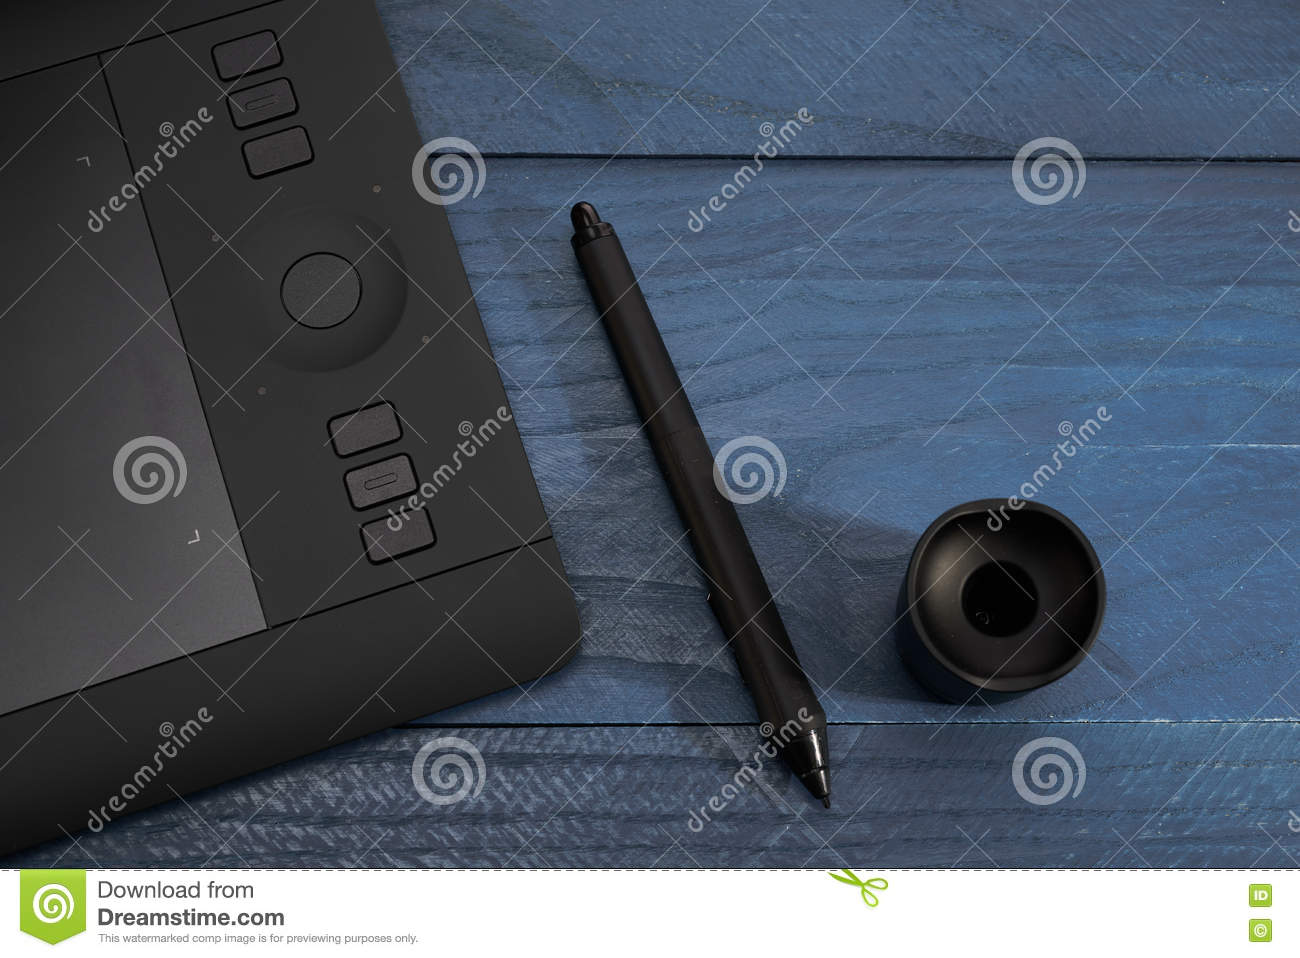 Stupendous Black Handle From A Professional Graphic Tablet Stock Image Download Free Architecture Designs Scobabritishbridgeorg